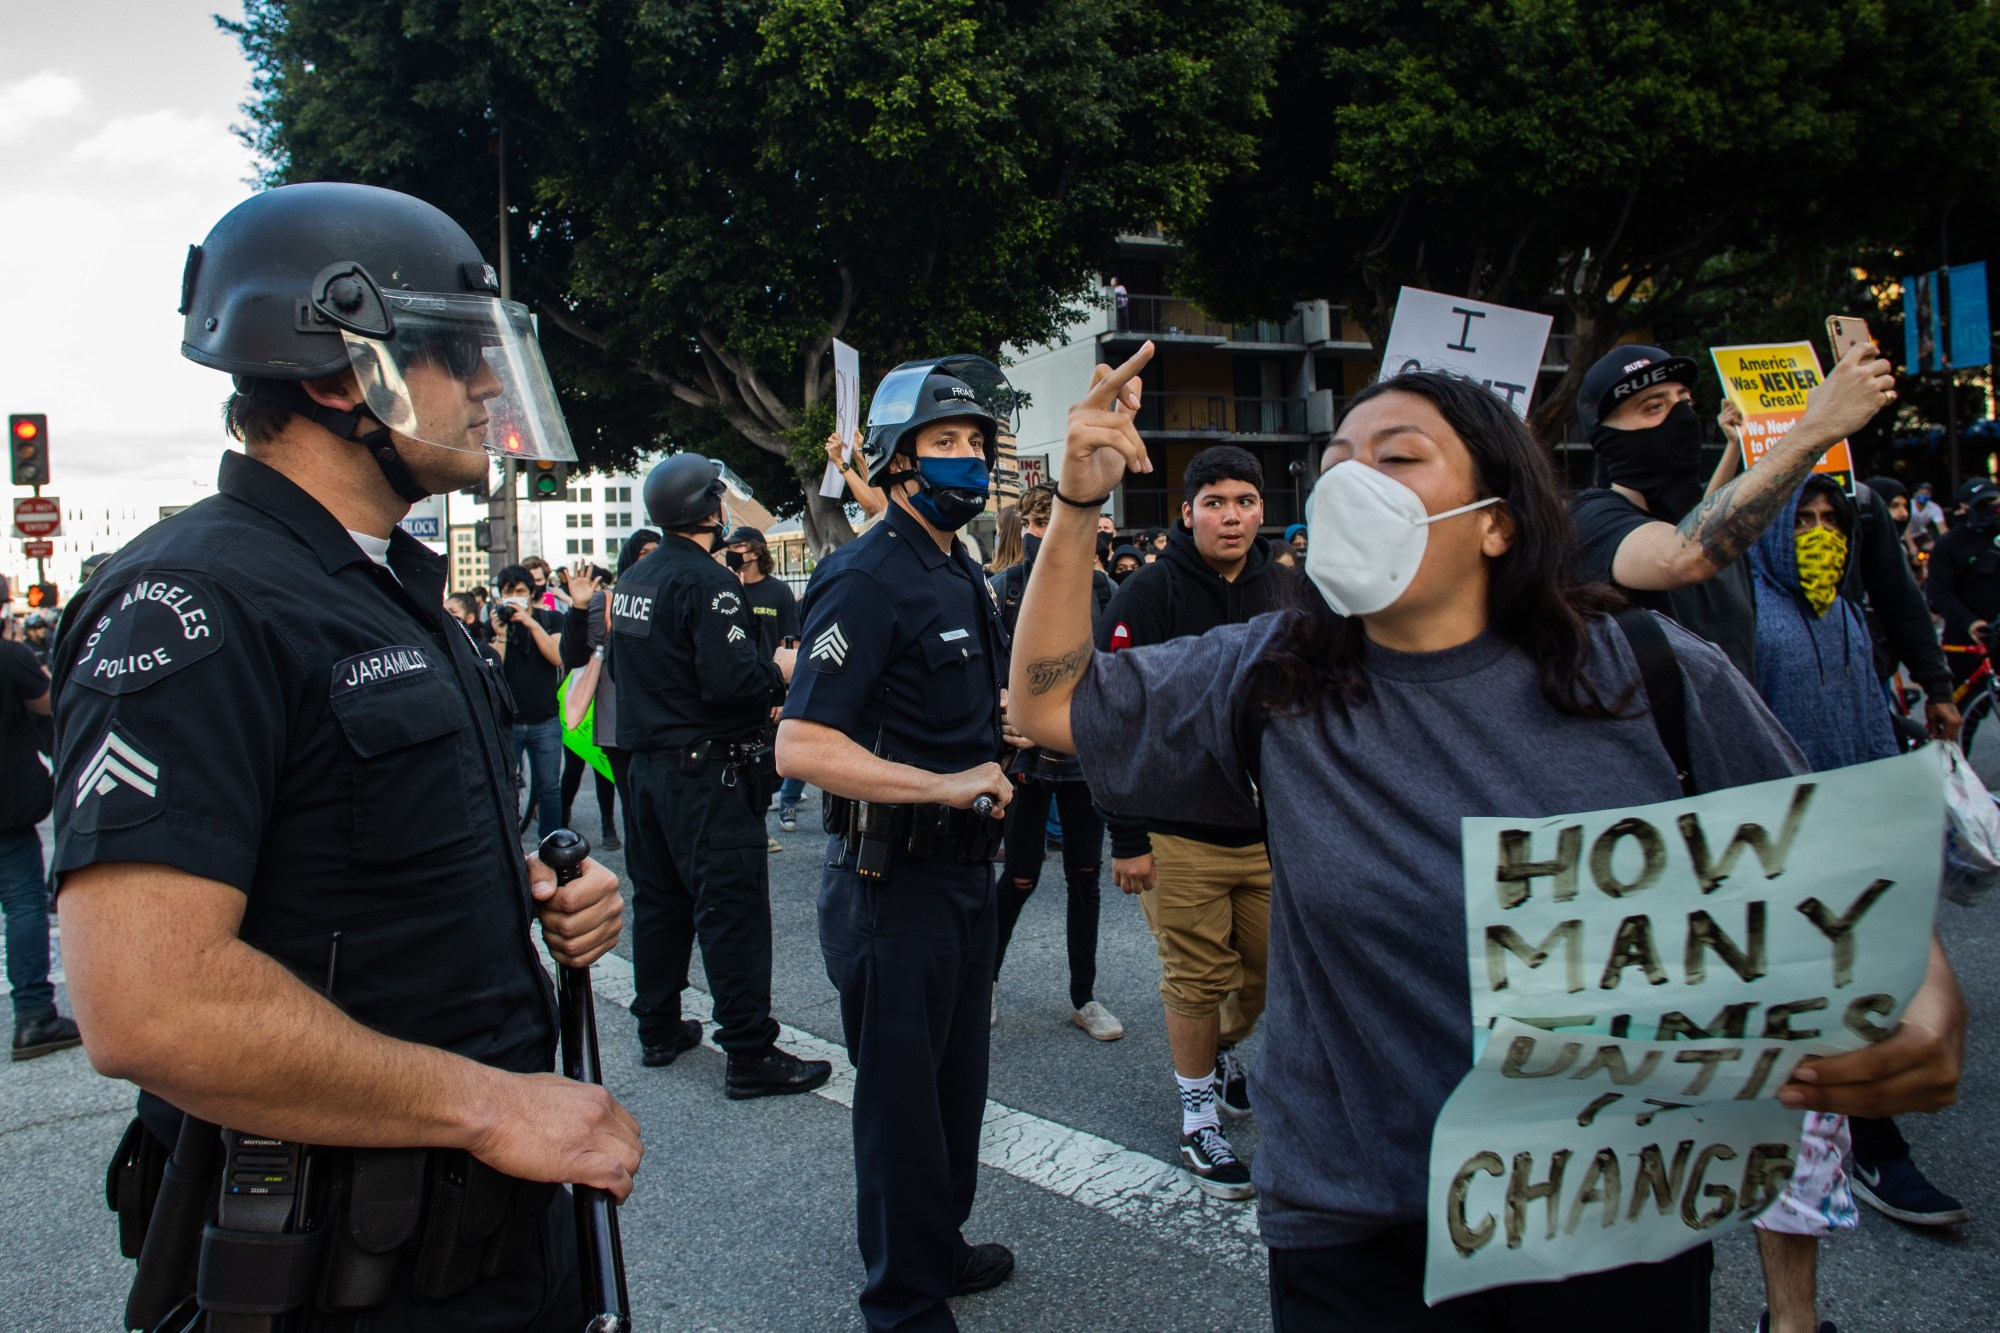 Demonstrators protest in response to the police killing of George Floyd on May 29, 2020, in Los Angeles, California. (Apu Gomes/Getty Images)